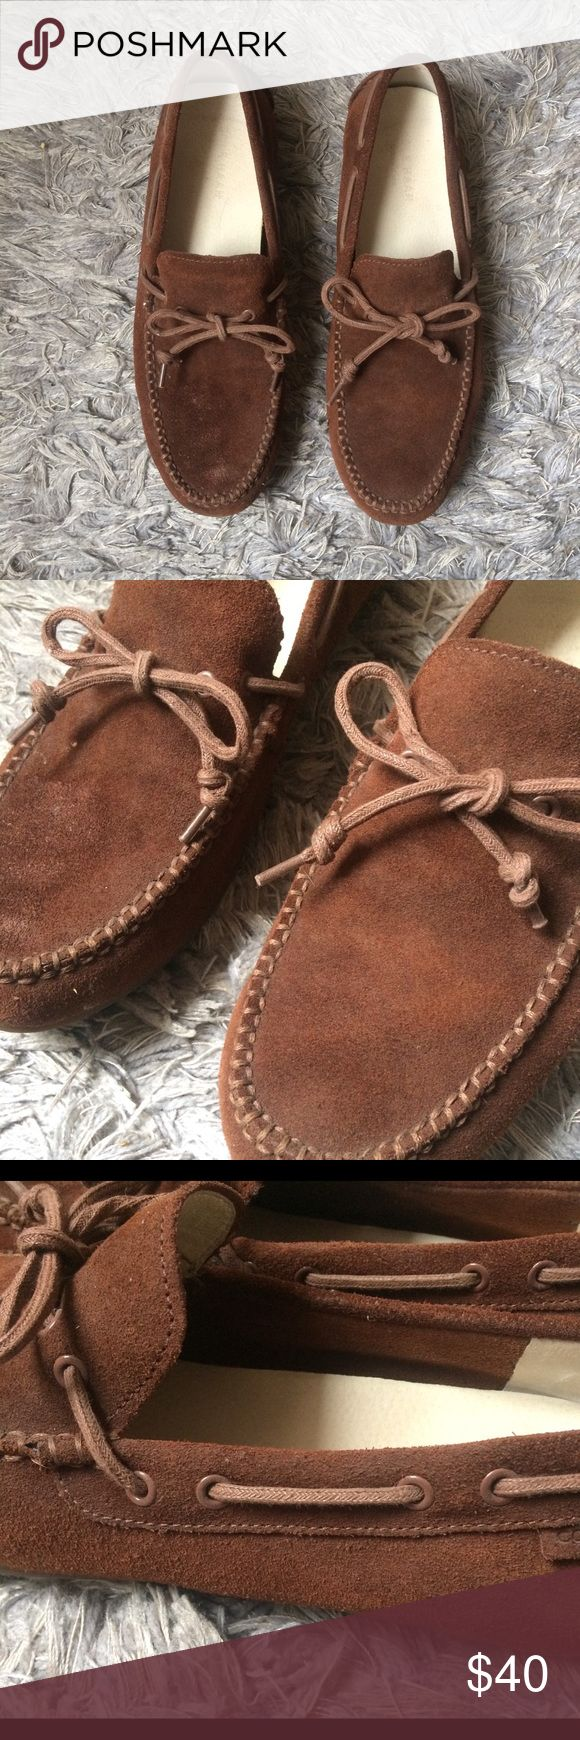 Cole Haan Men's Brown Loafers Boat Shoes Cole Haan Men's Brown Loafers Boat Shoes. In great condition. Worn twice. Cole Haan Shoes Boat Shoes